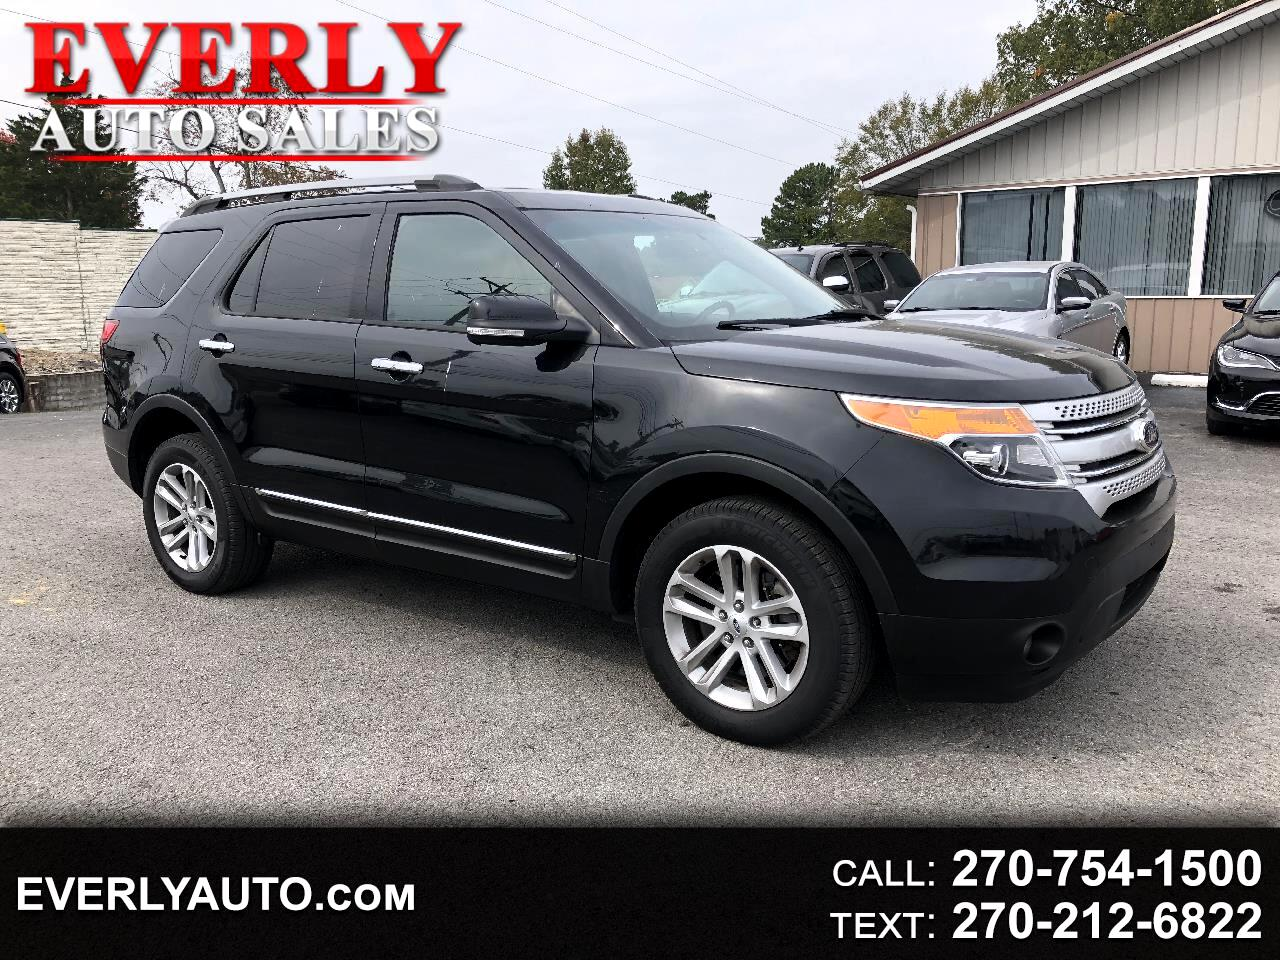 used cars for sale evansville in 47715 everly auto sales everly auto sales